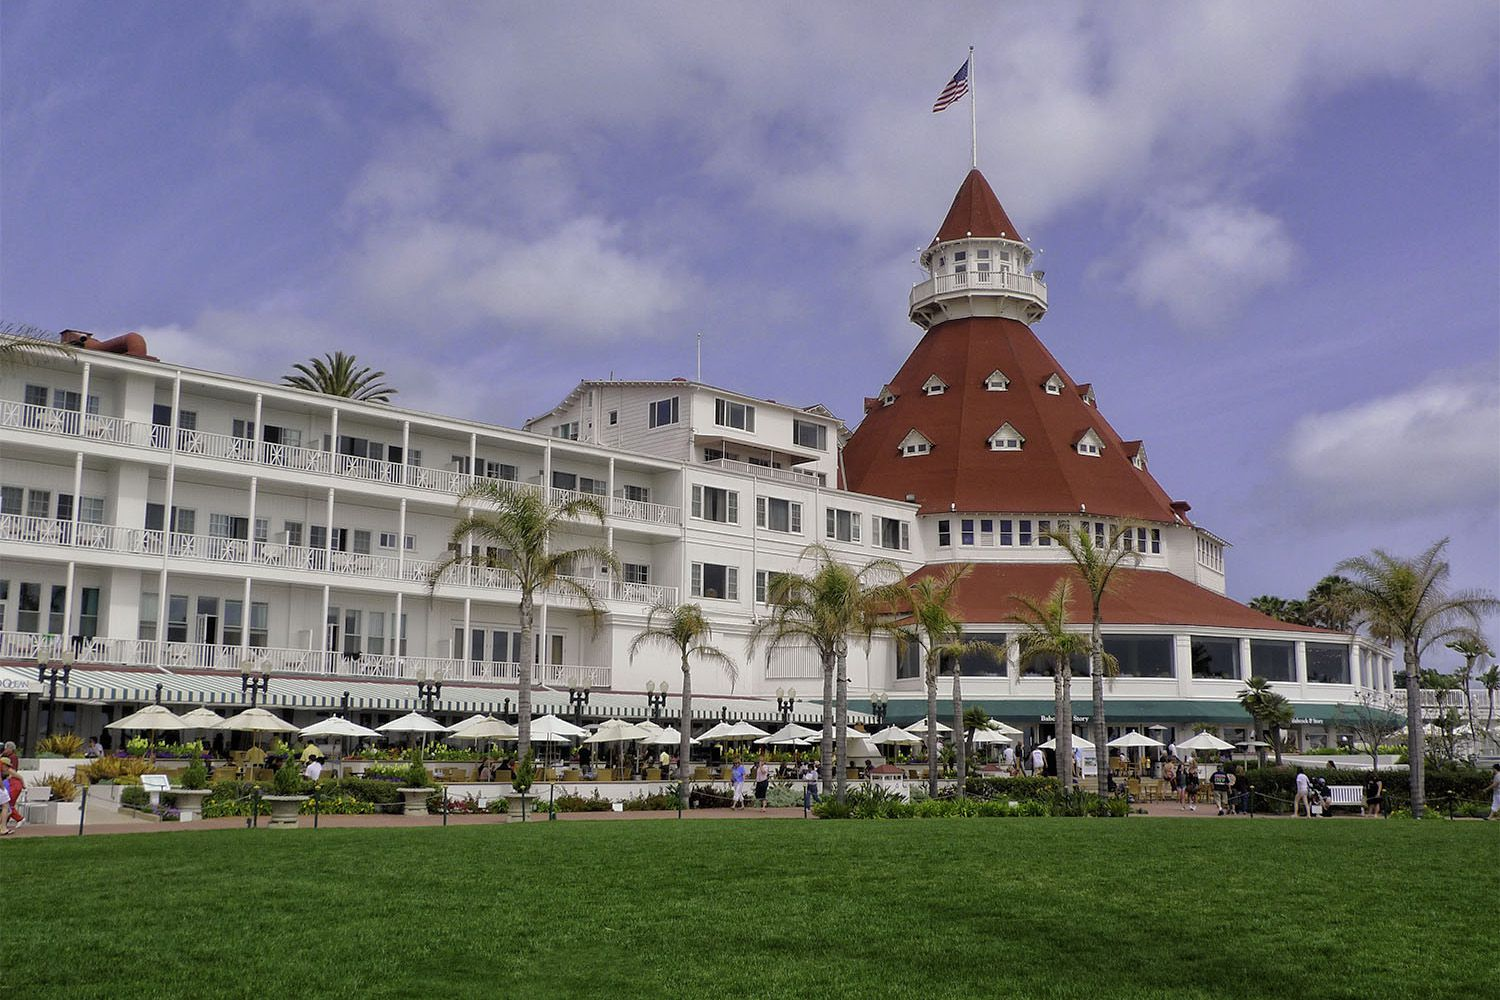 How To Spend A Perfect Day On Coronado Island